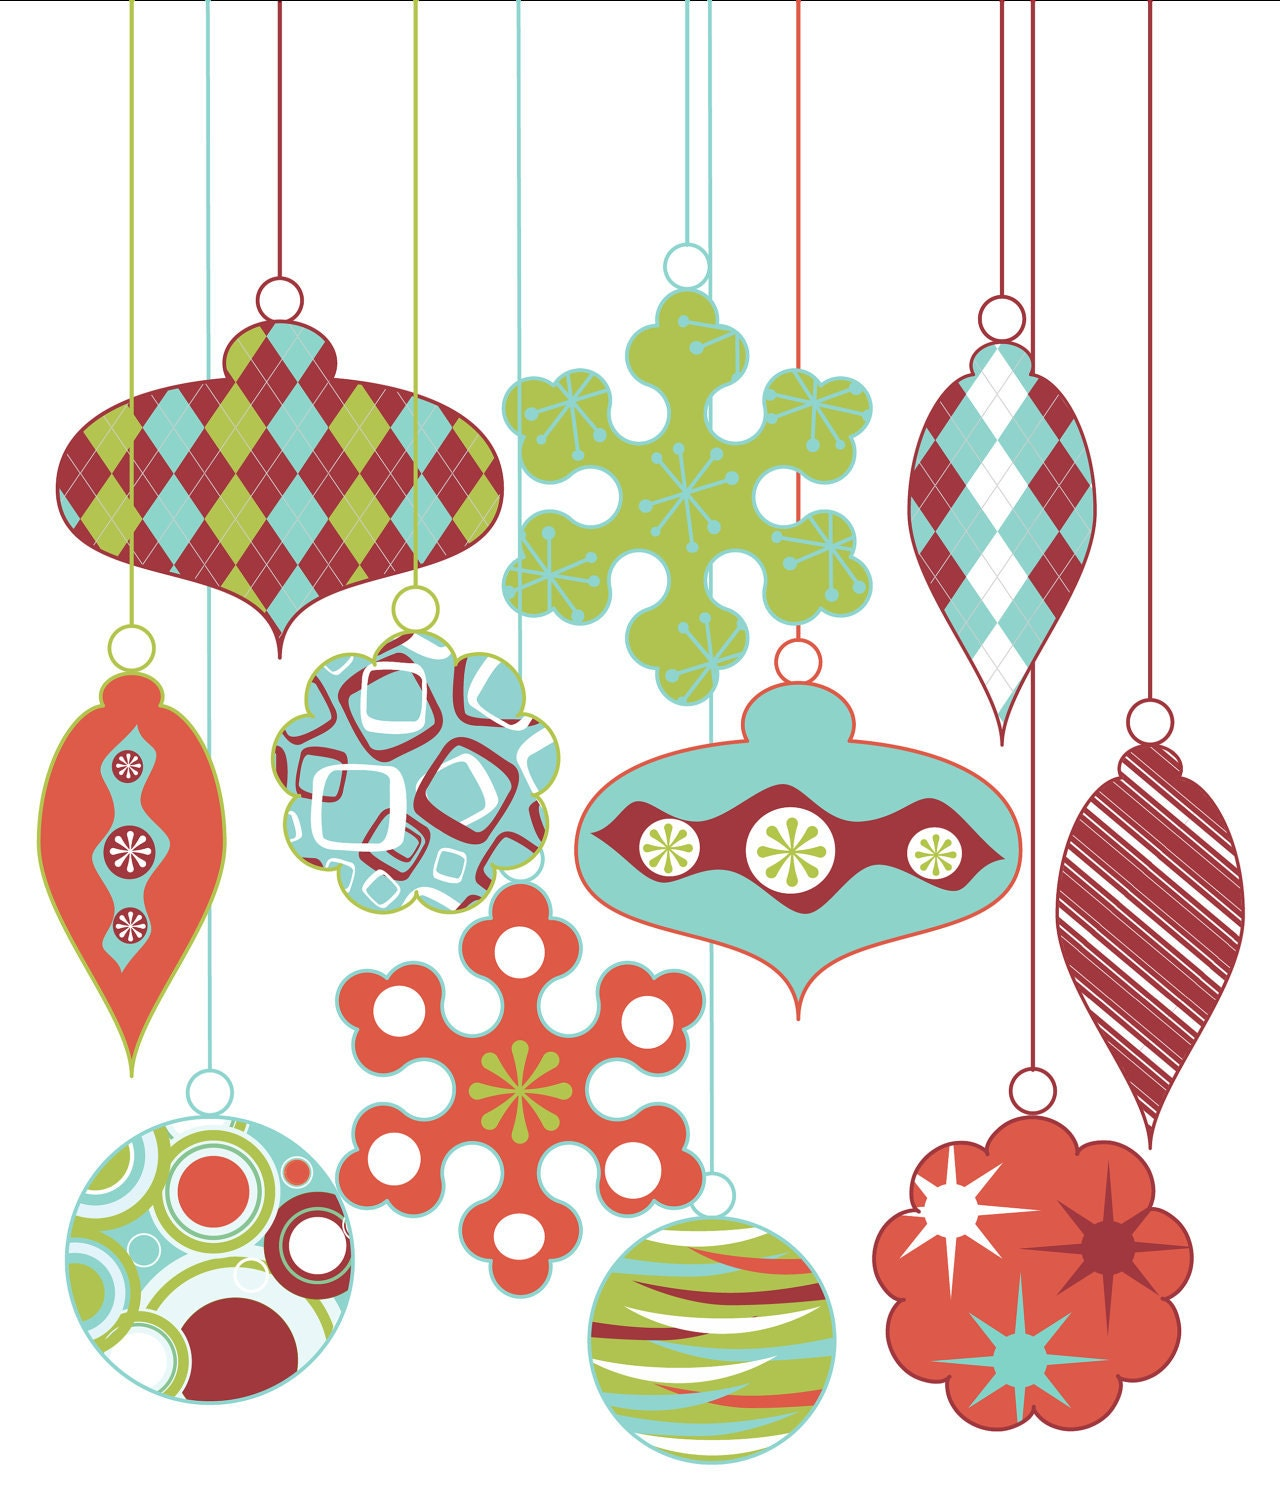 Royalty Free Vintage Christmas Clip ArtVintage Christmas Ornaments Clipart